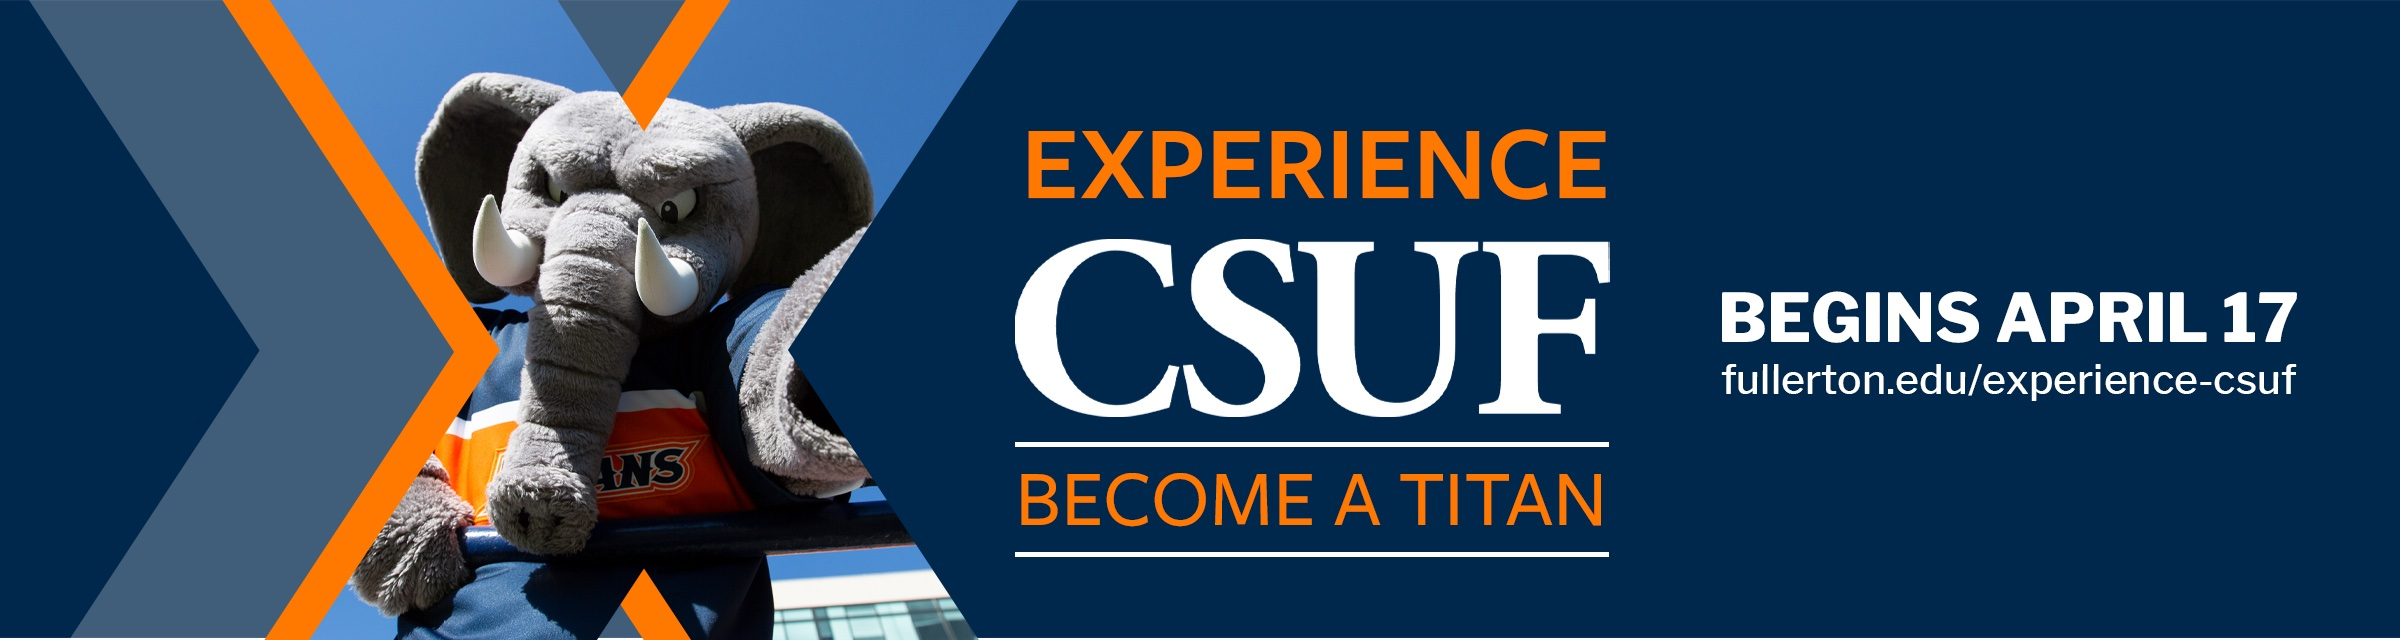 Experience CSUF: Become A Titan